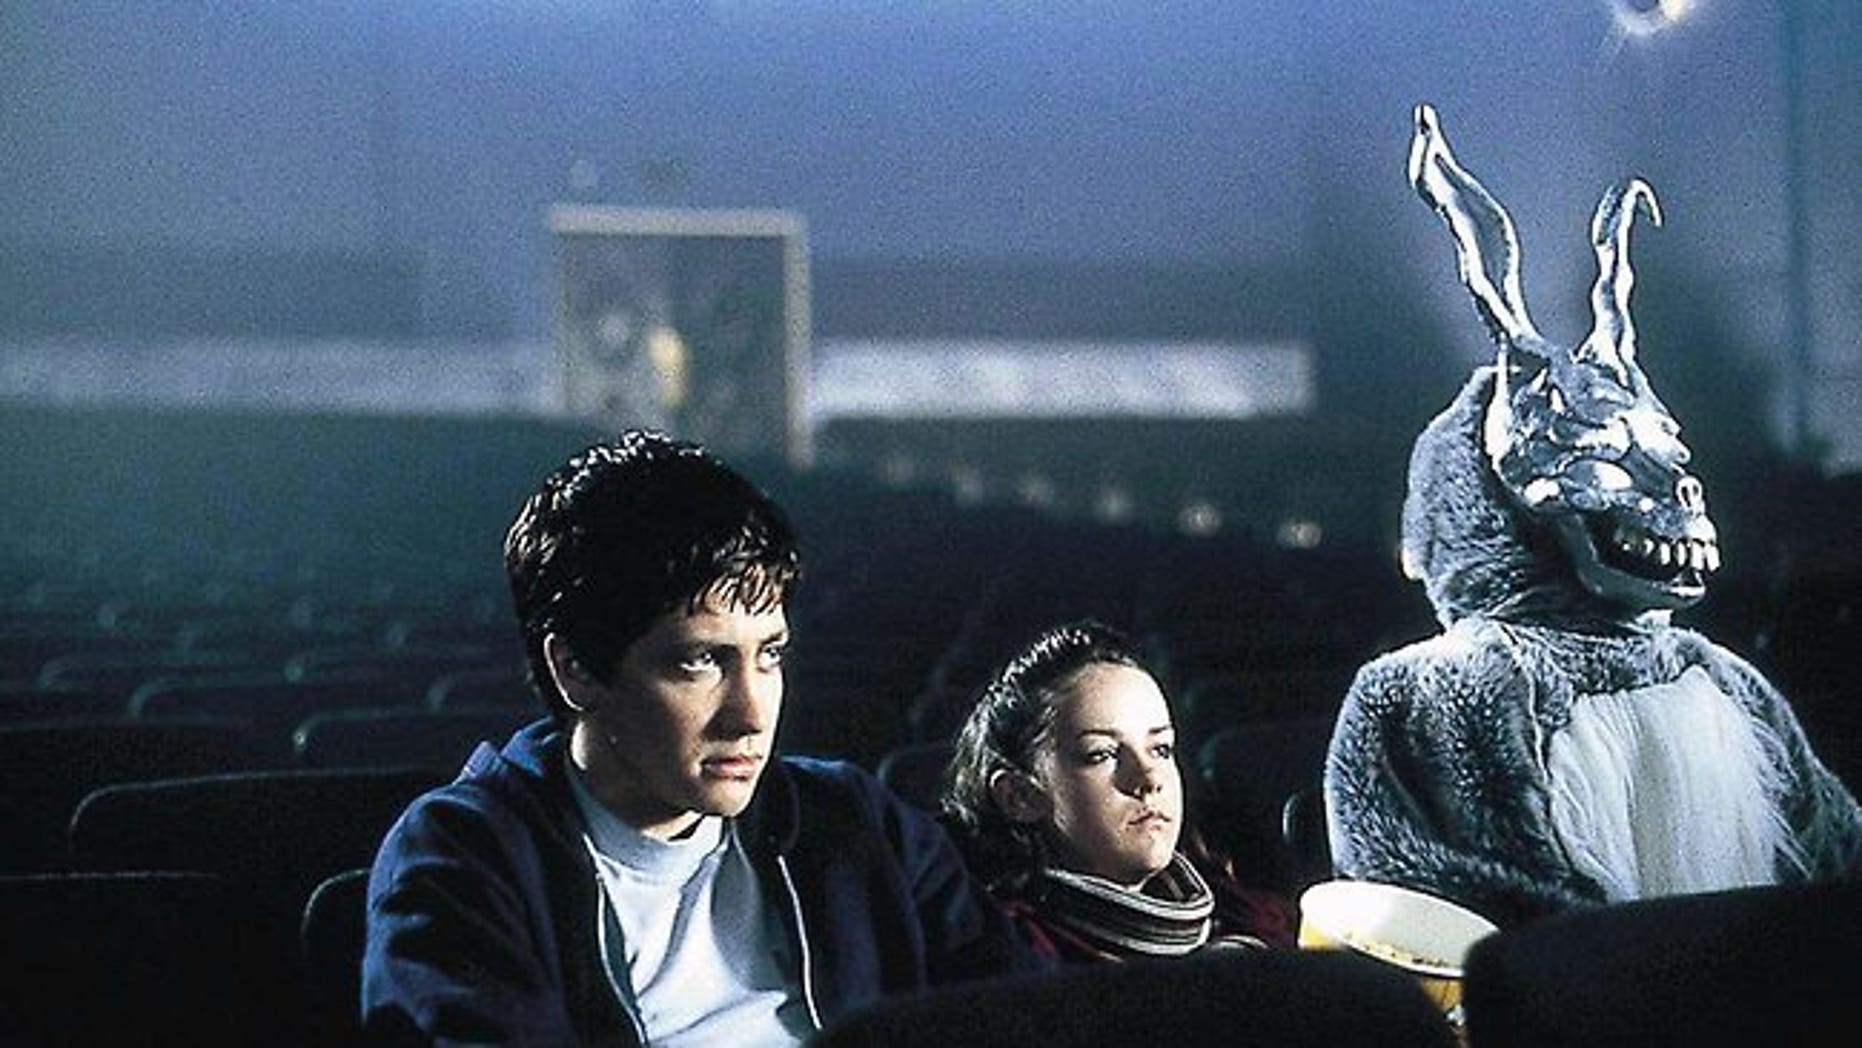 """Time travel stories on TV are totally made up, say Chinese officials. Time-travel is a wildly popular theme in TV and film, such as the movie """"Donnie Darko,"""" seen here."""